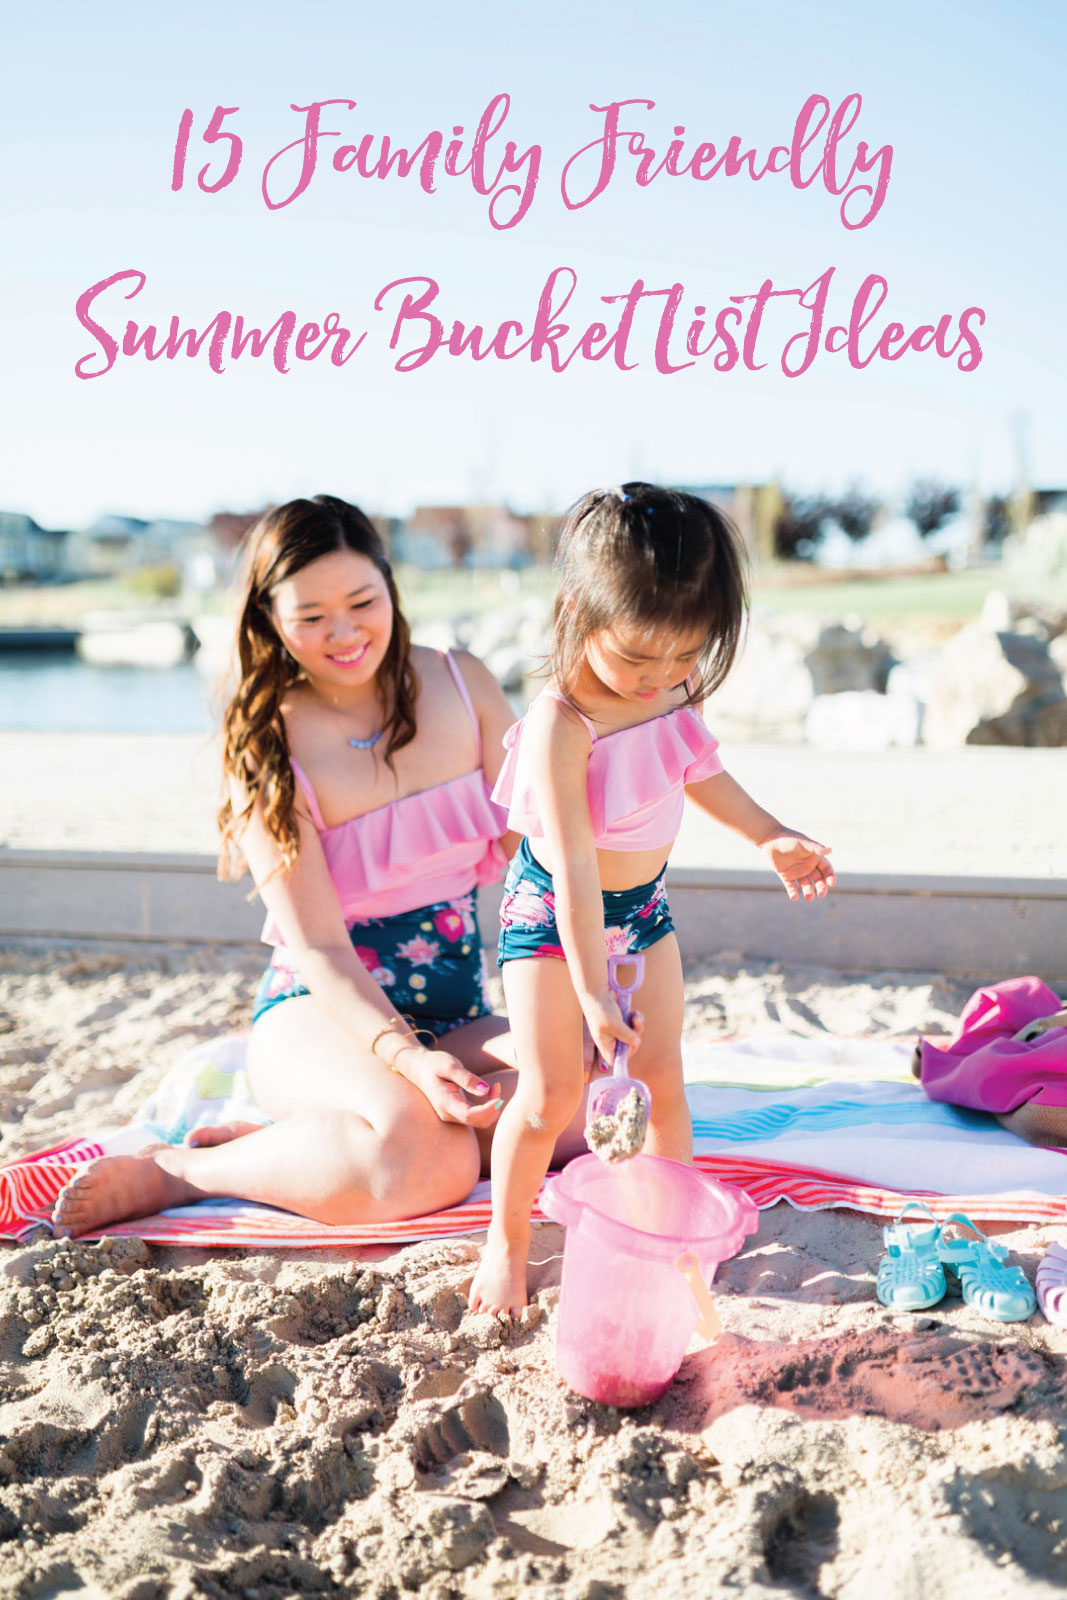 15 Family Friendly Summer Bucket List Ideas